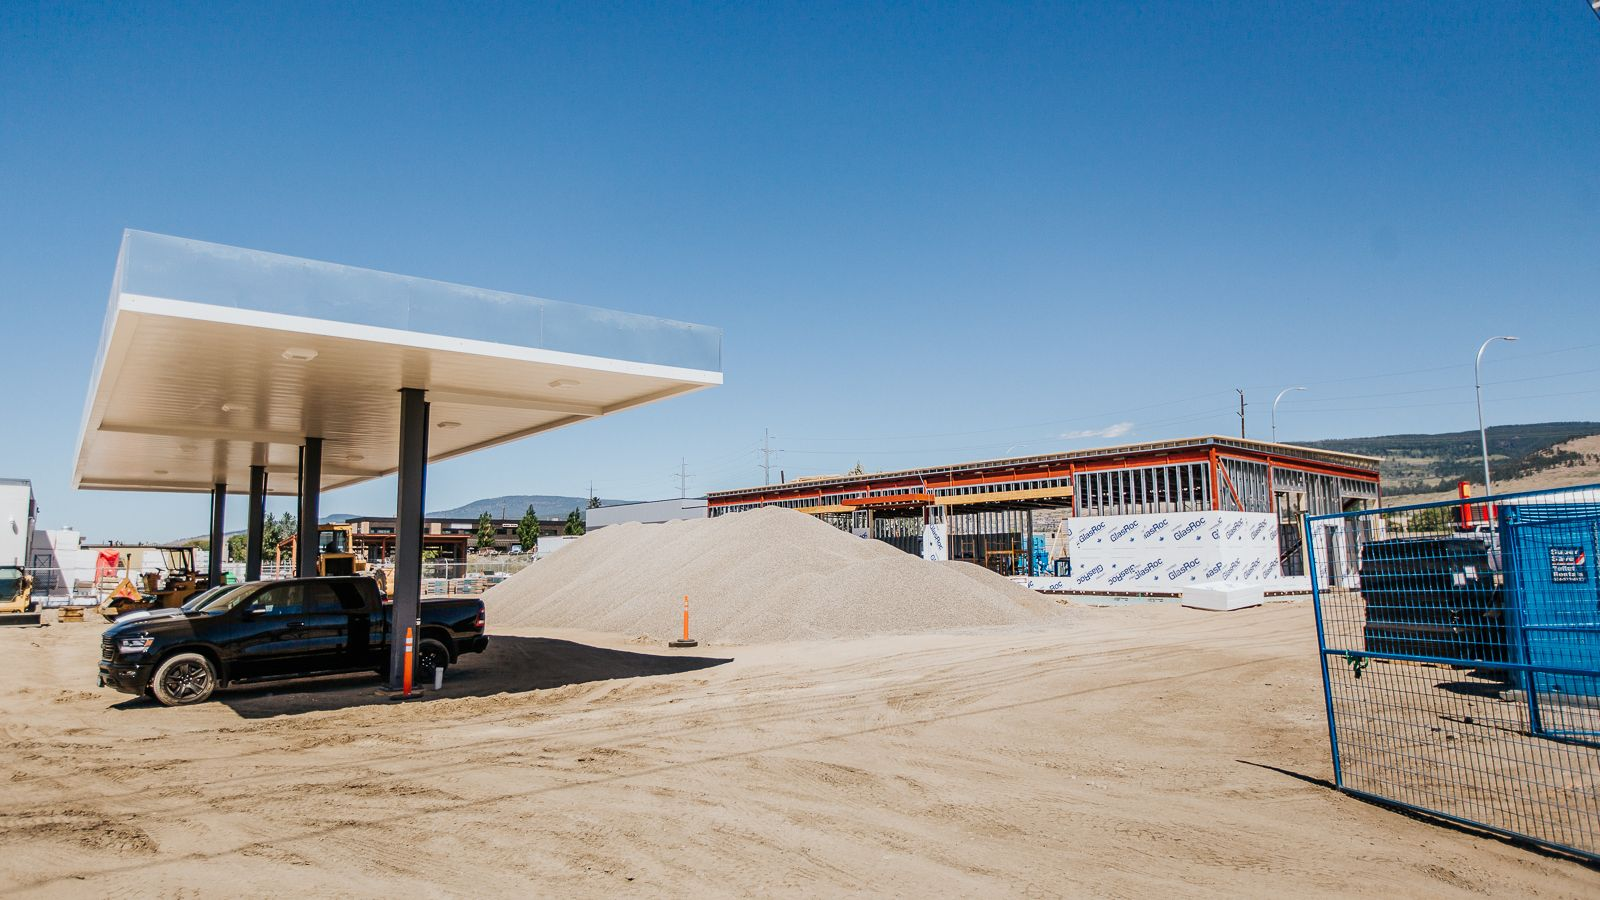 A gas station and a store under construction